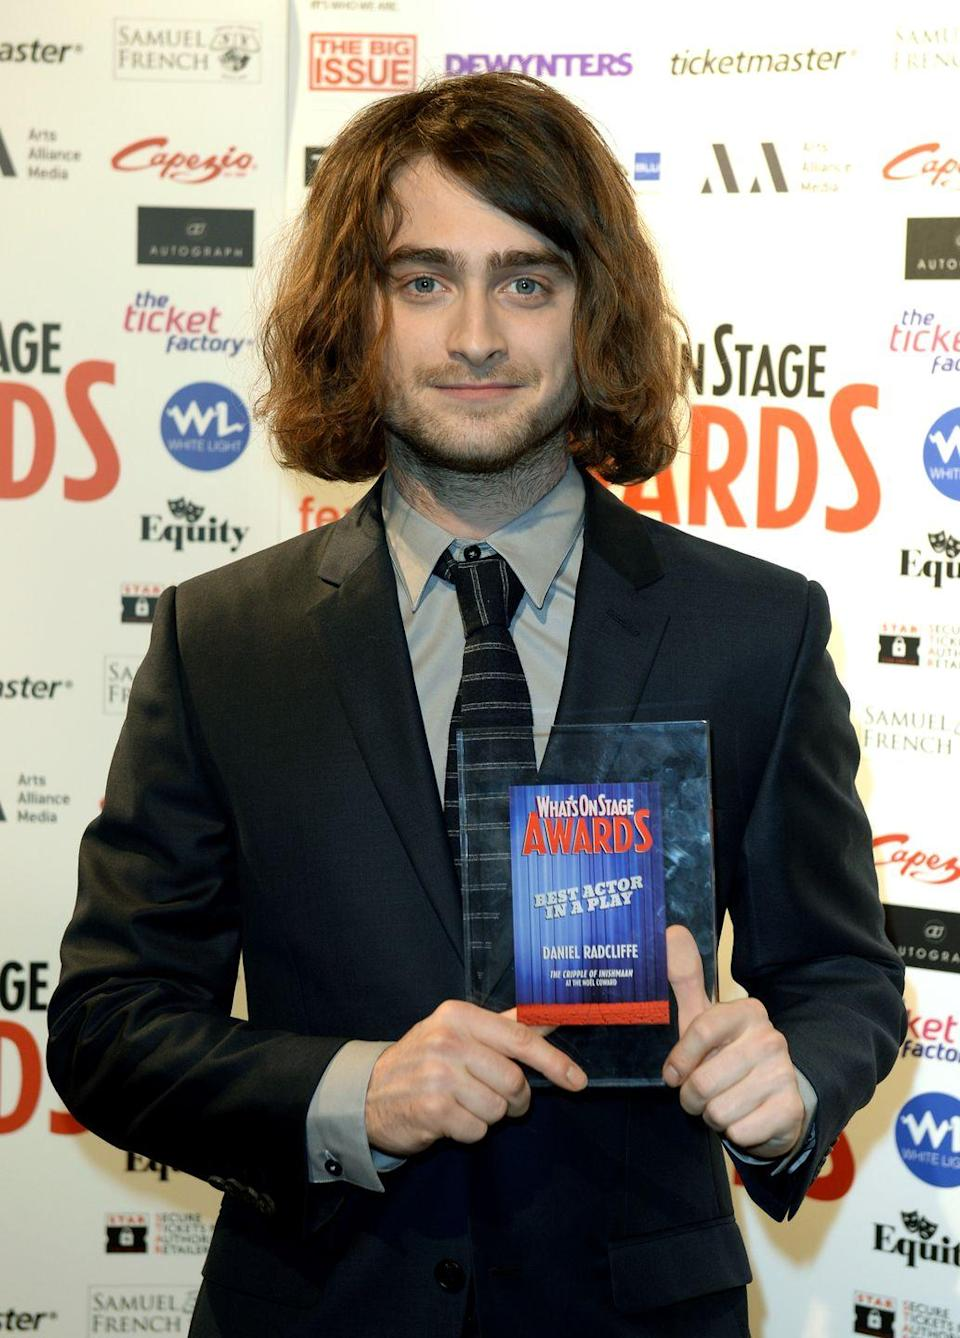 <p>If you weren't a fan of Daniel Radcliffe's shaggy bob in 2014, lucky for you it wasn't permanent. The actor was only growing his hair out for the film <em>Escape from Pretoria</em>. </p>